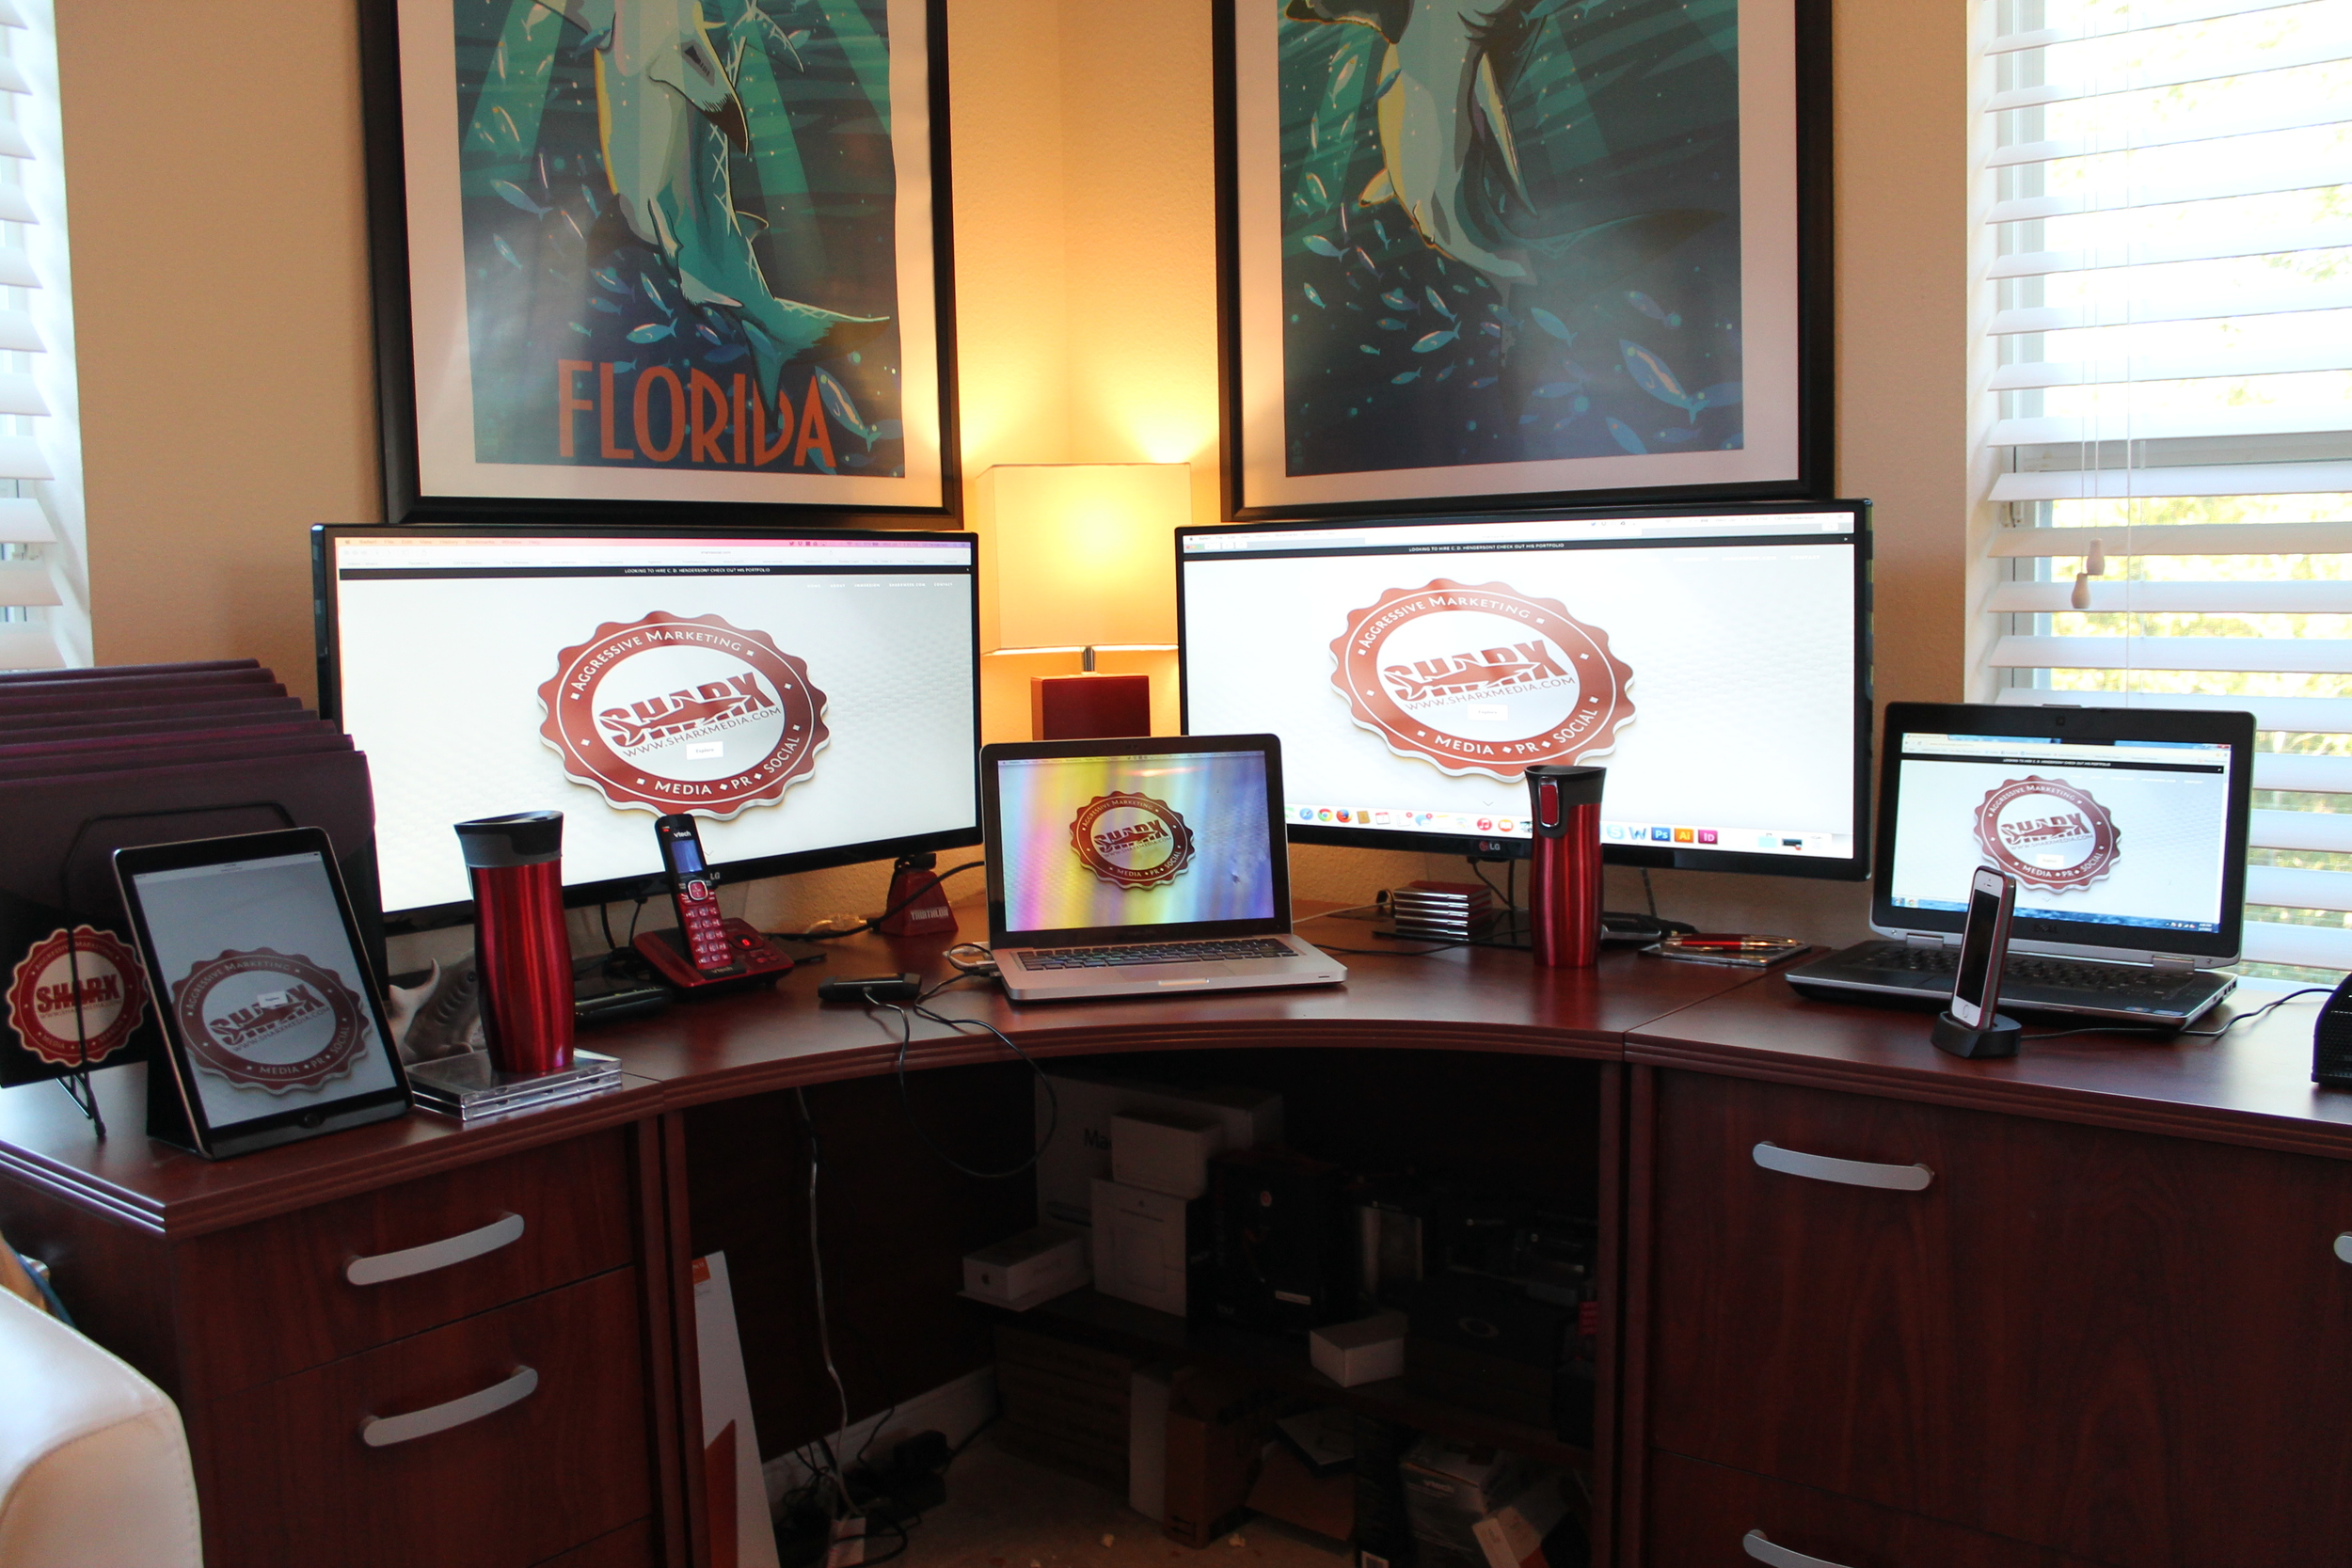 CLICK HERE TO SEE THE SHARX MEDIA 'SOCIAL MEDIA COMMAND CENTER'